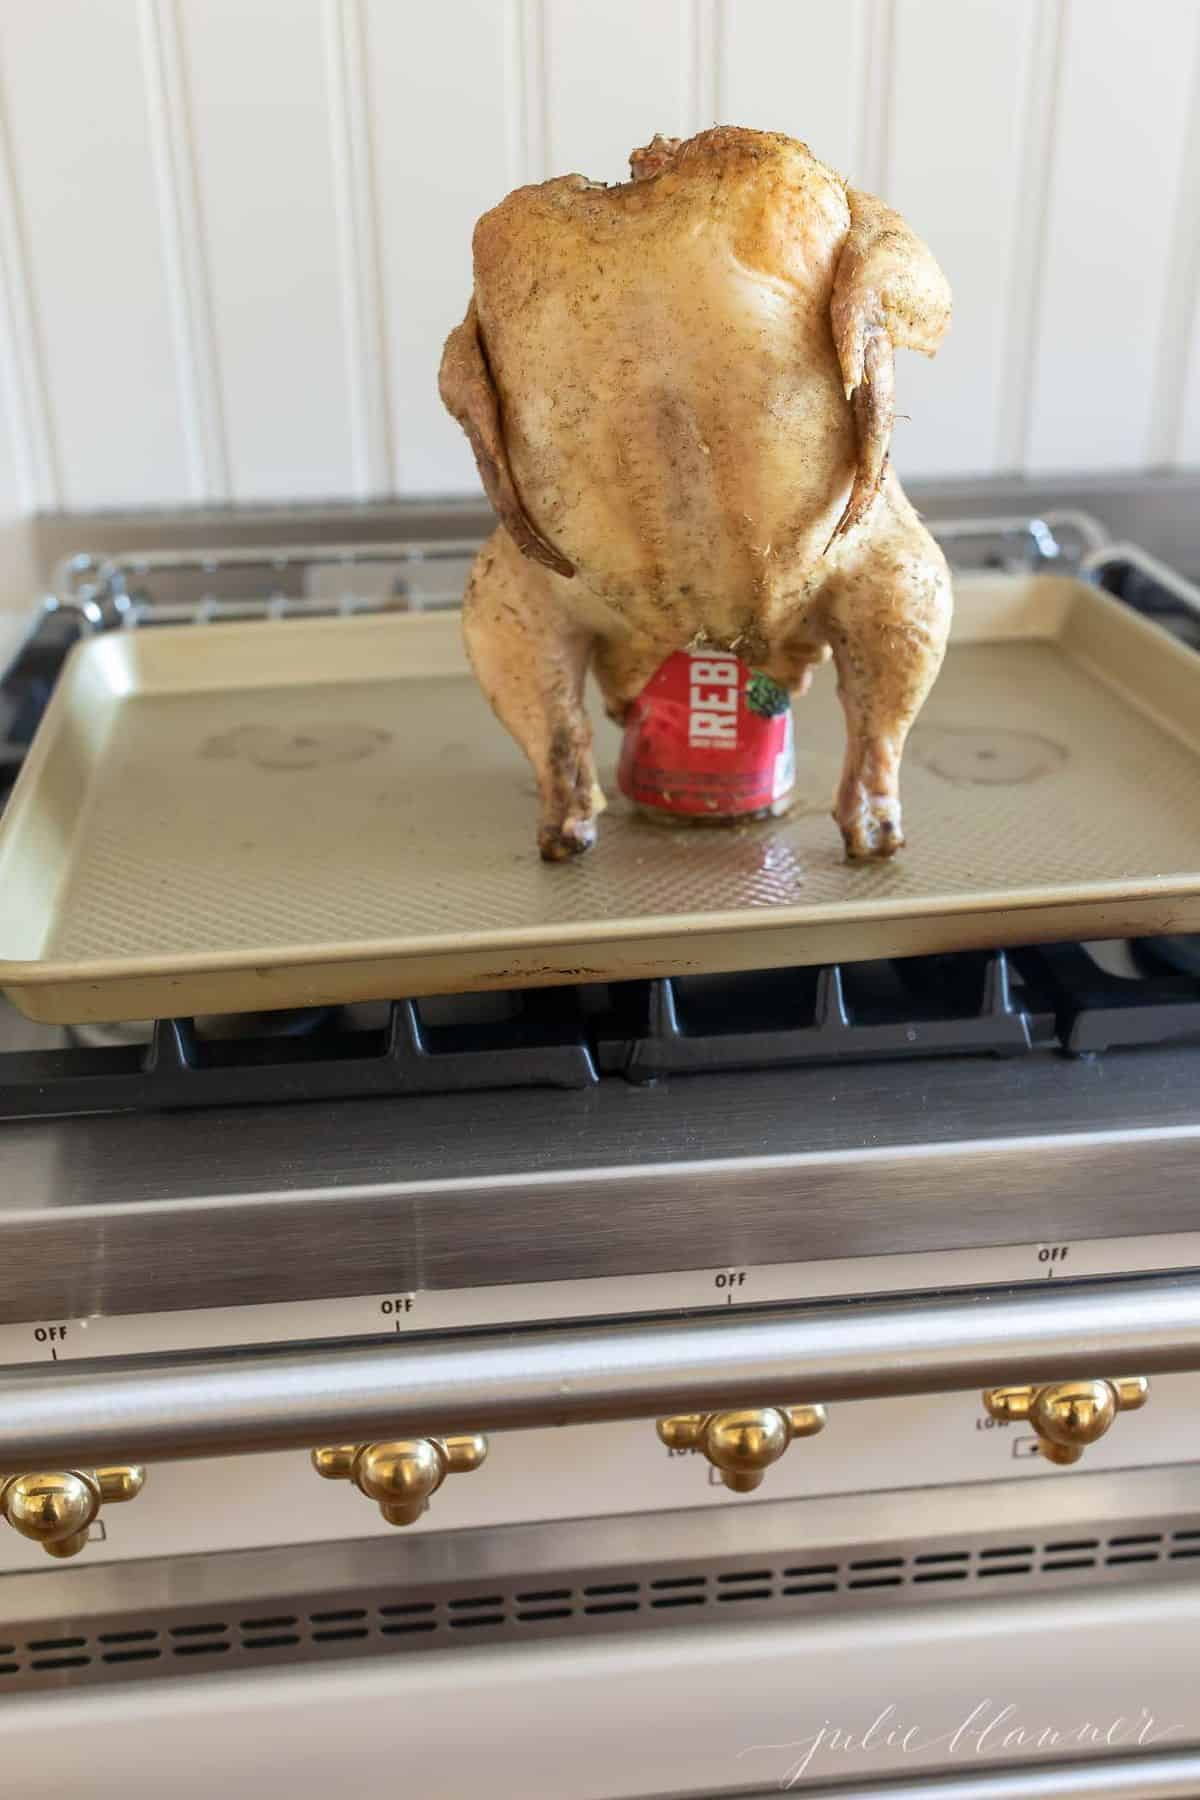 Verical image of roasted chicken resting on a beer can, placed on a gold sheetpan on top of range. #beercanchicken